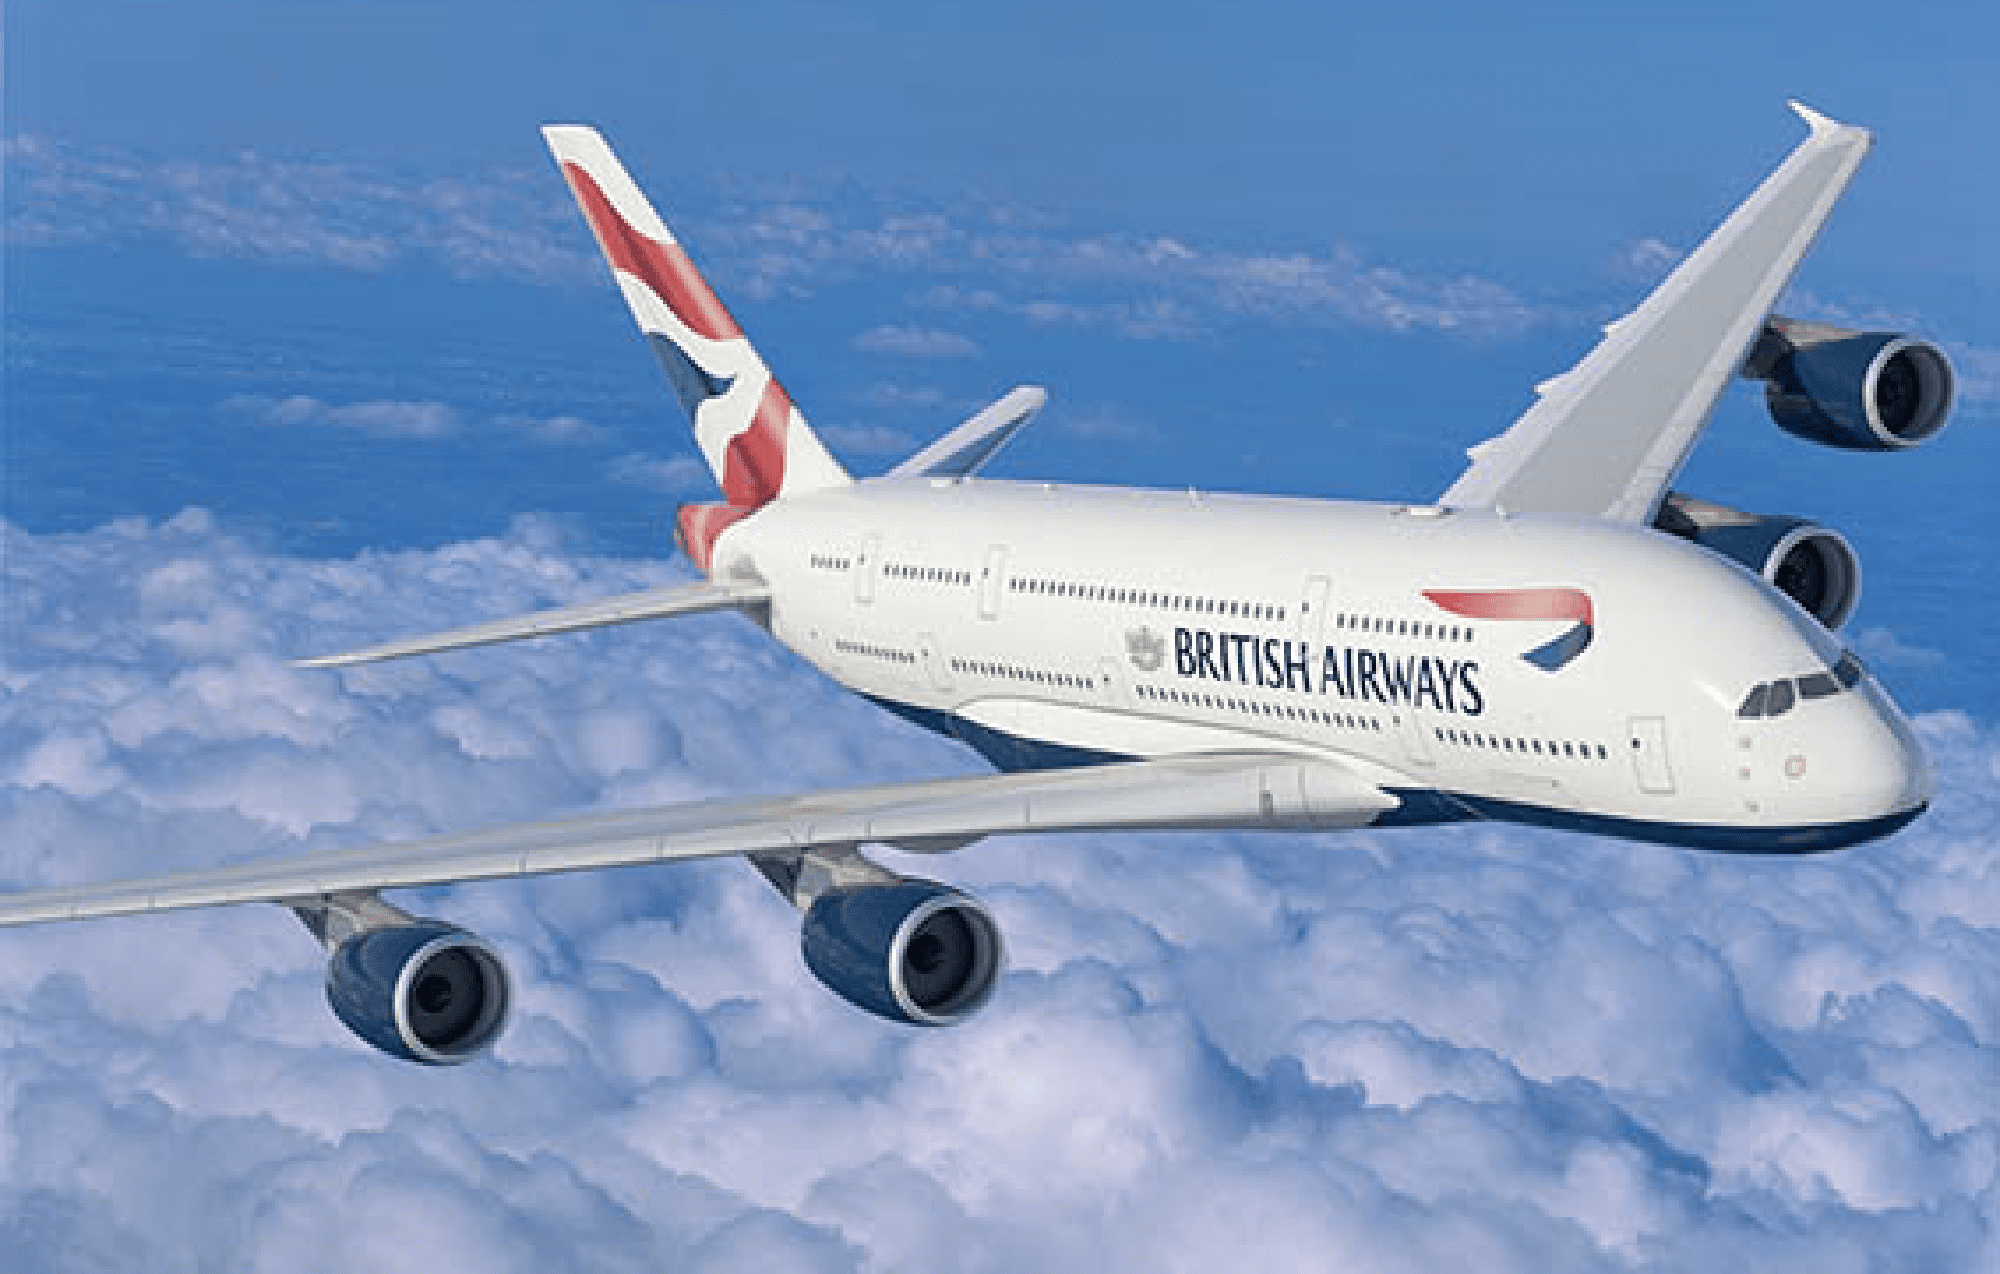 British Airways: Seven things that define the UK national carrier on its 100th anniversary